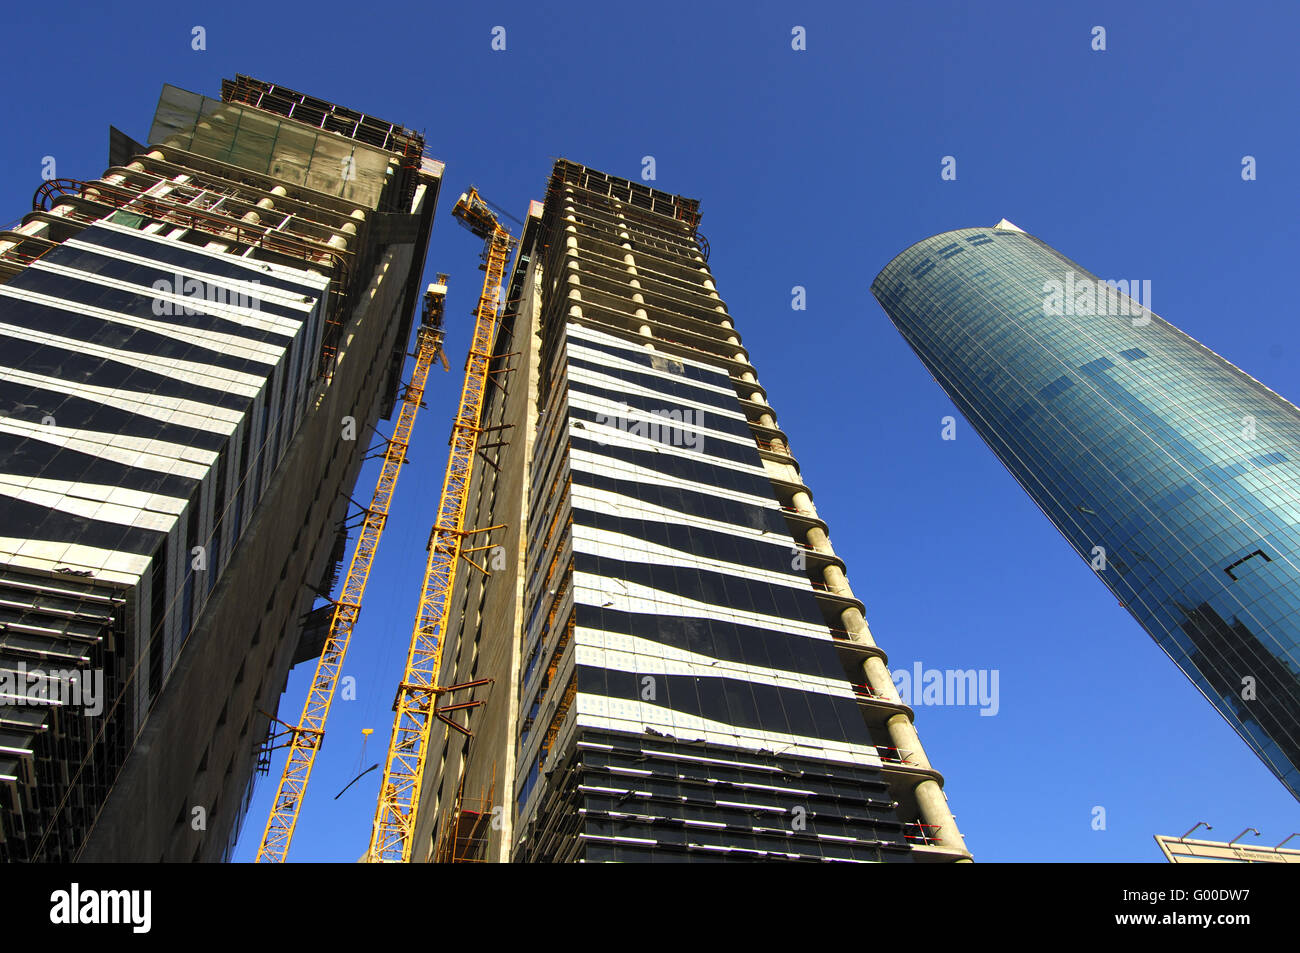 Acico Twin Towers Stock Photos & Acico Twin Towers Stock Images - Alamy